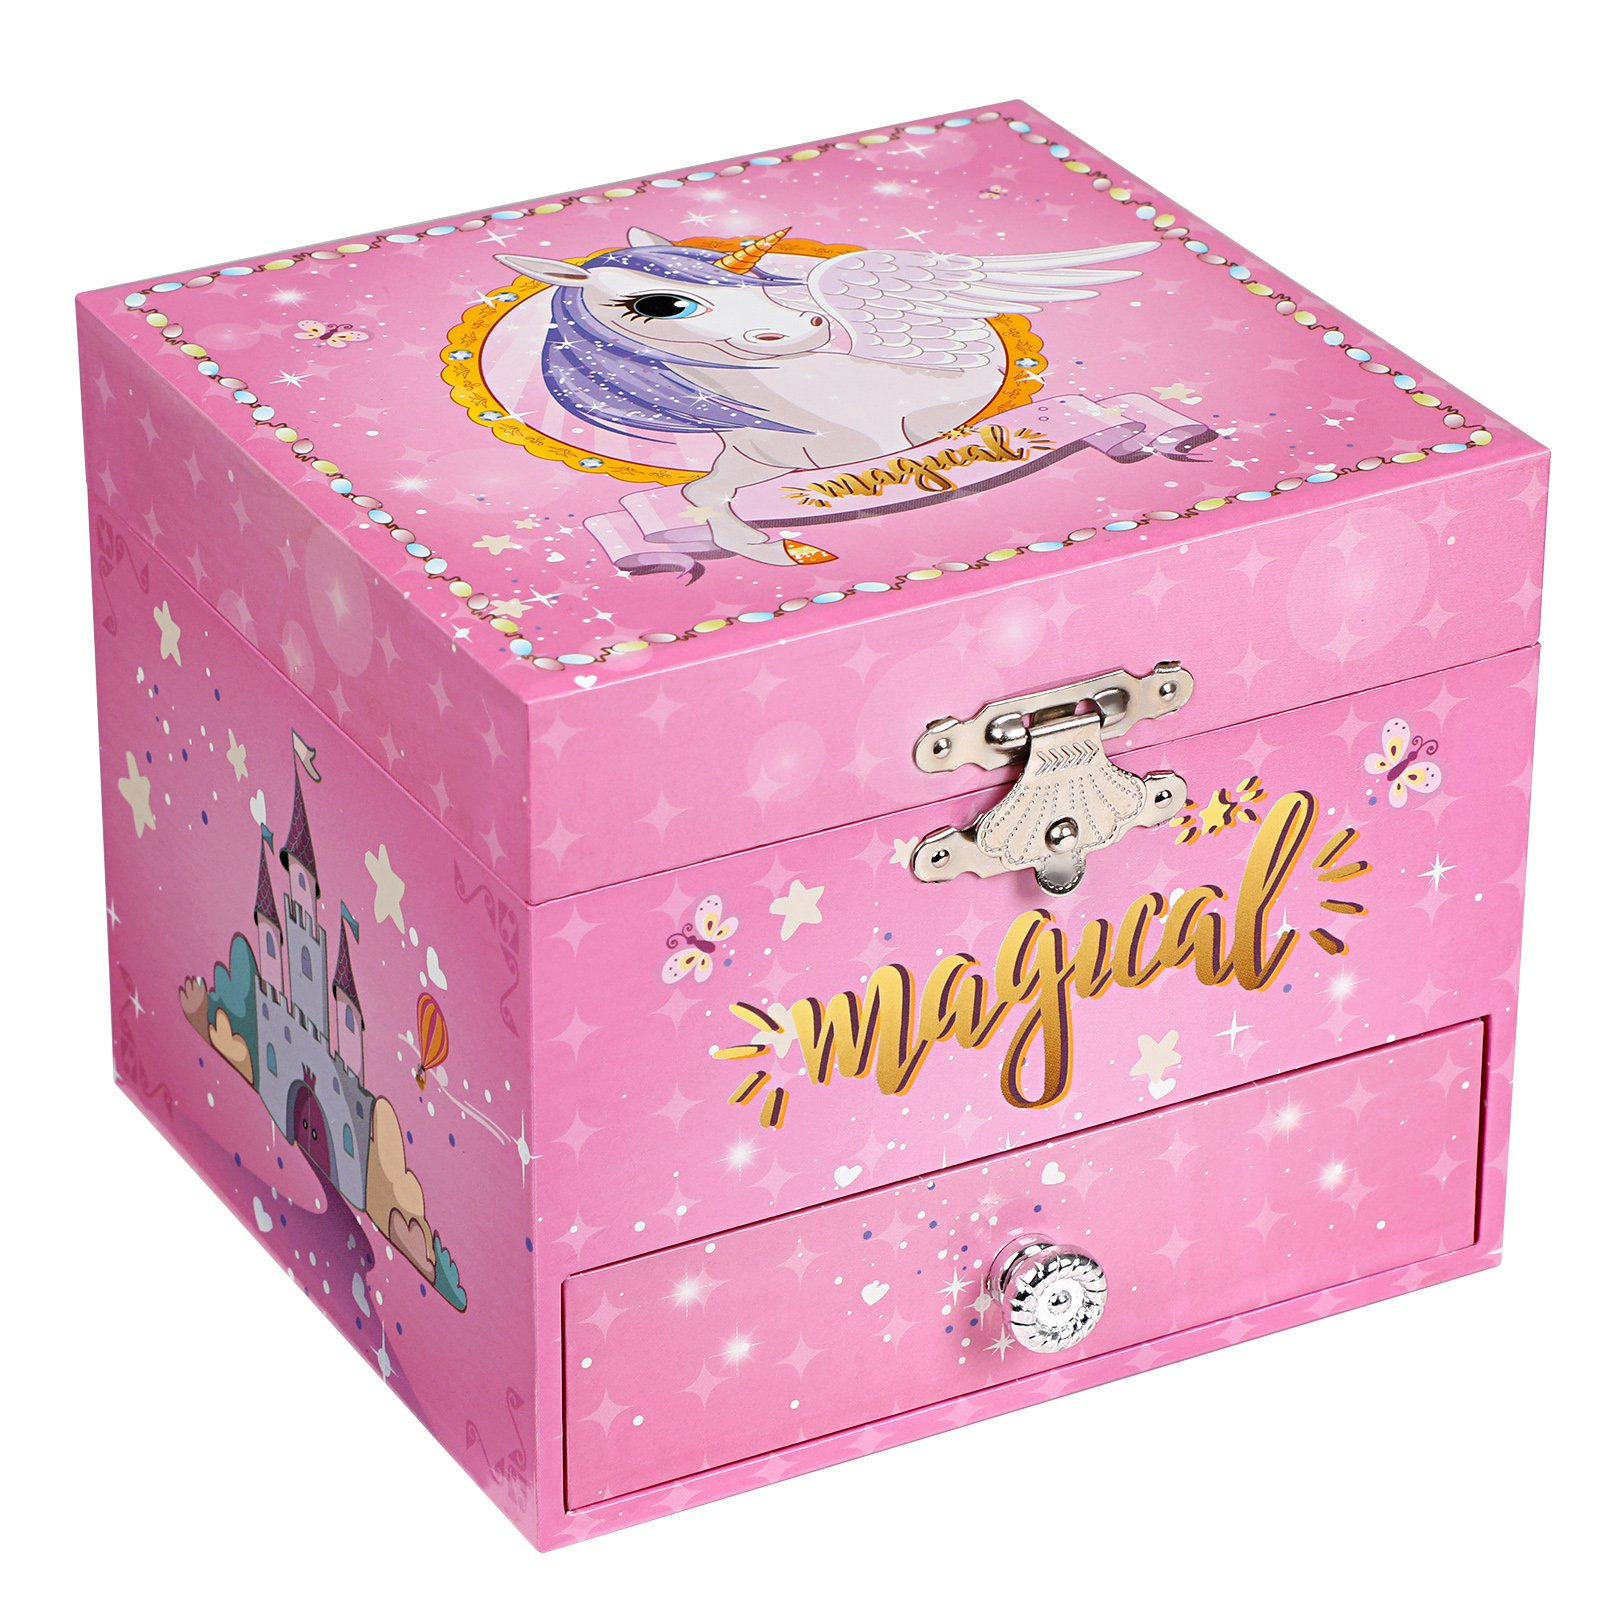 SONGMICS Ballerina Musical Jewelry Box, Unicorn for 3-5 years old Little Girls, Small Music Box with Drawer UJMC008PK